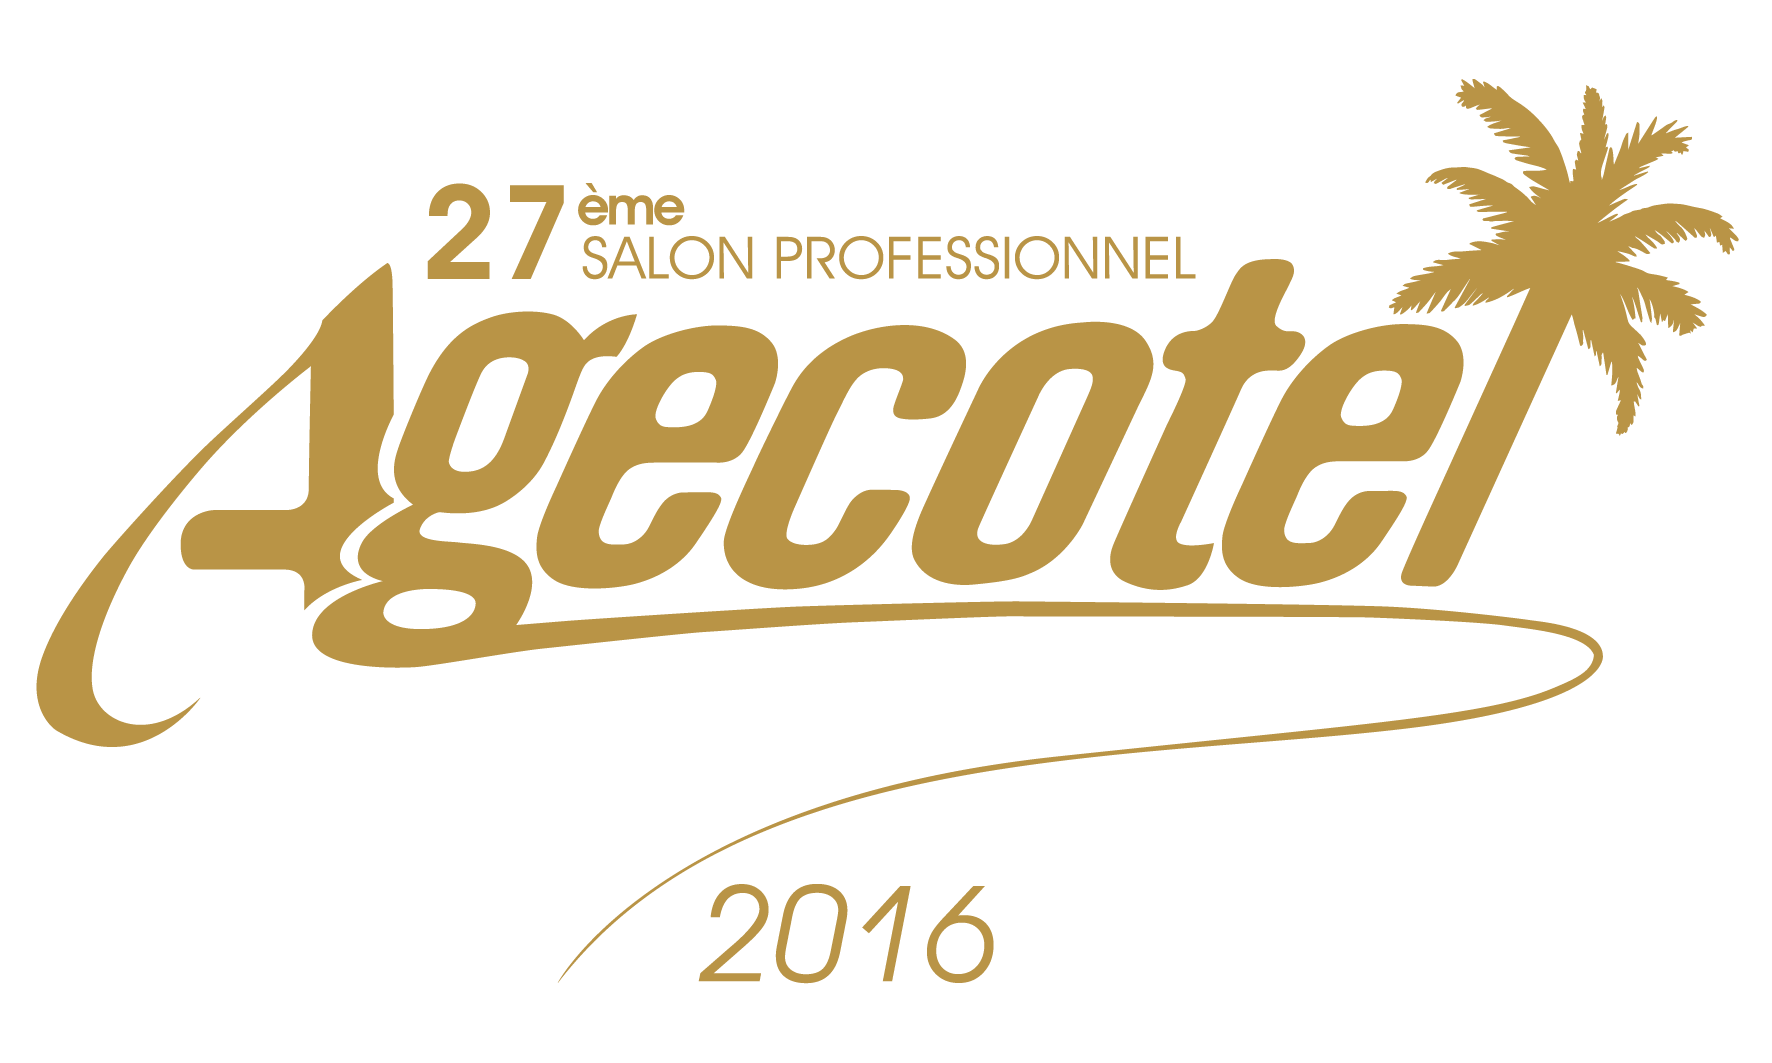 Salon Hotellerie Salon Hotellerie Restauration Dates Du 1er Trimestre 2016